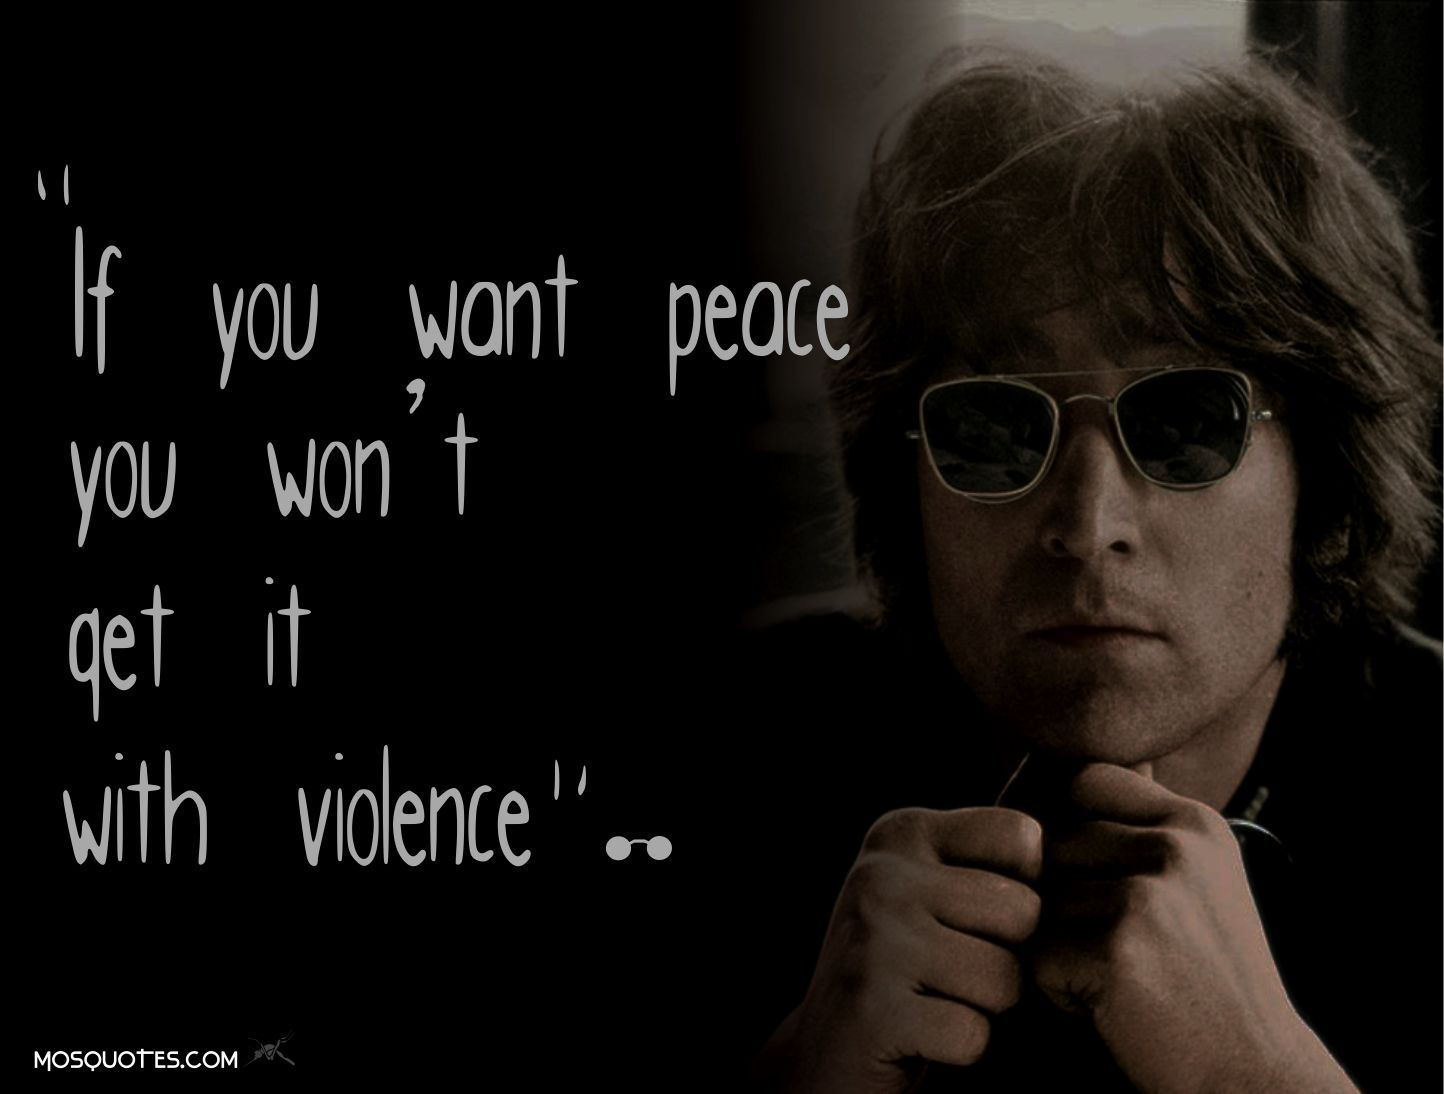 John Lennon Quotes If You Want Peace You Wont Get It With Violence